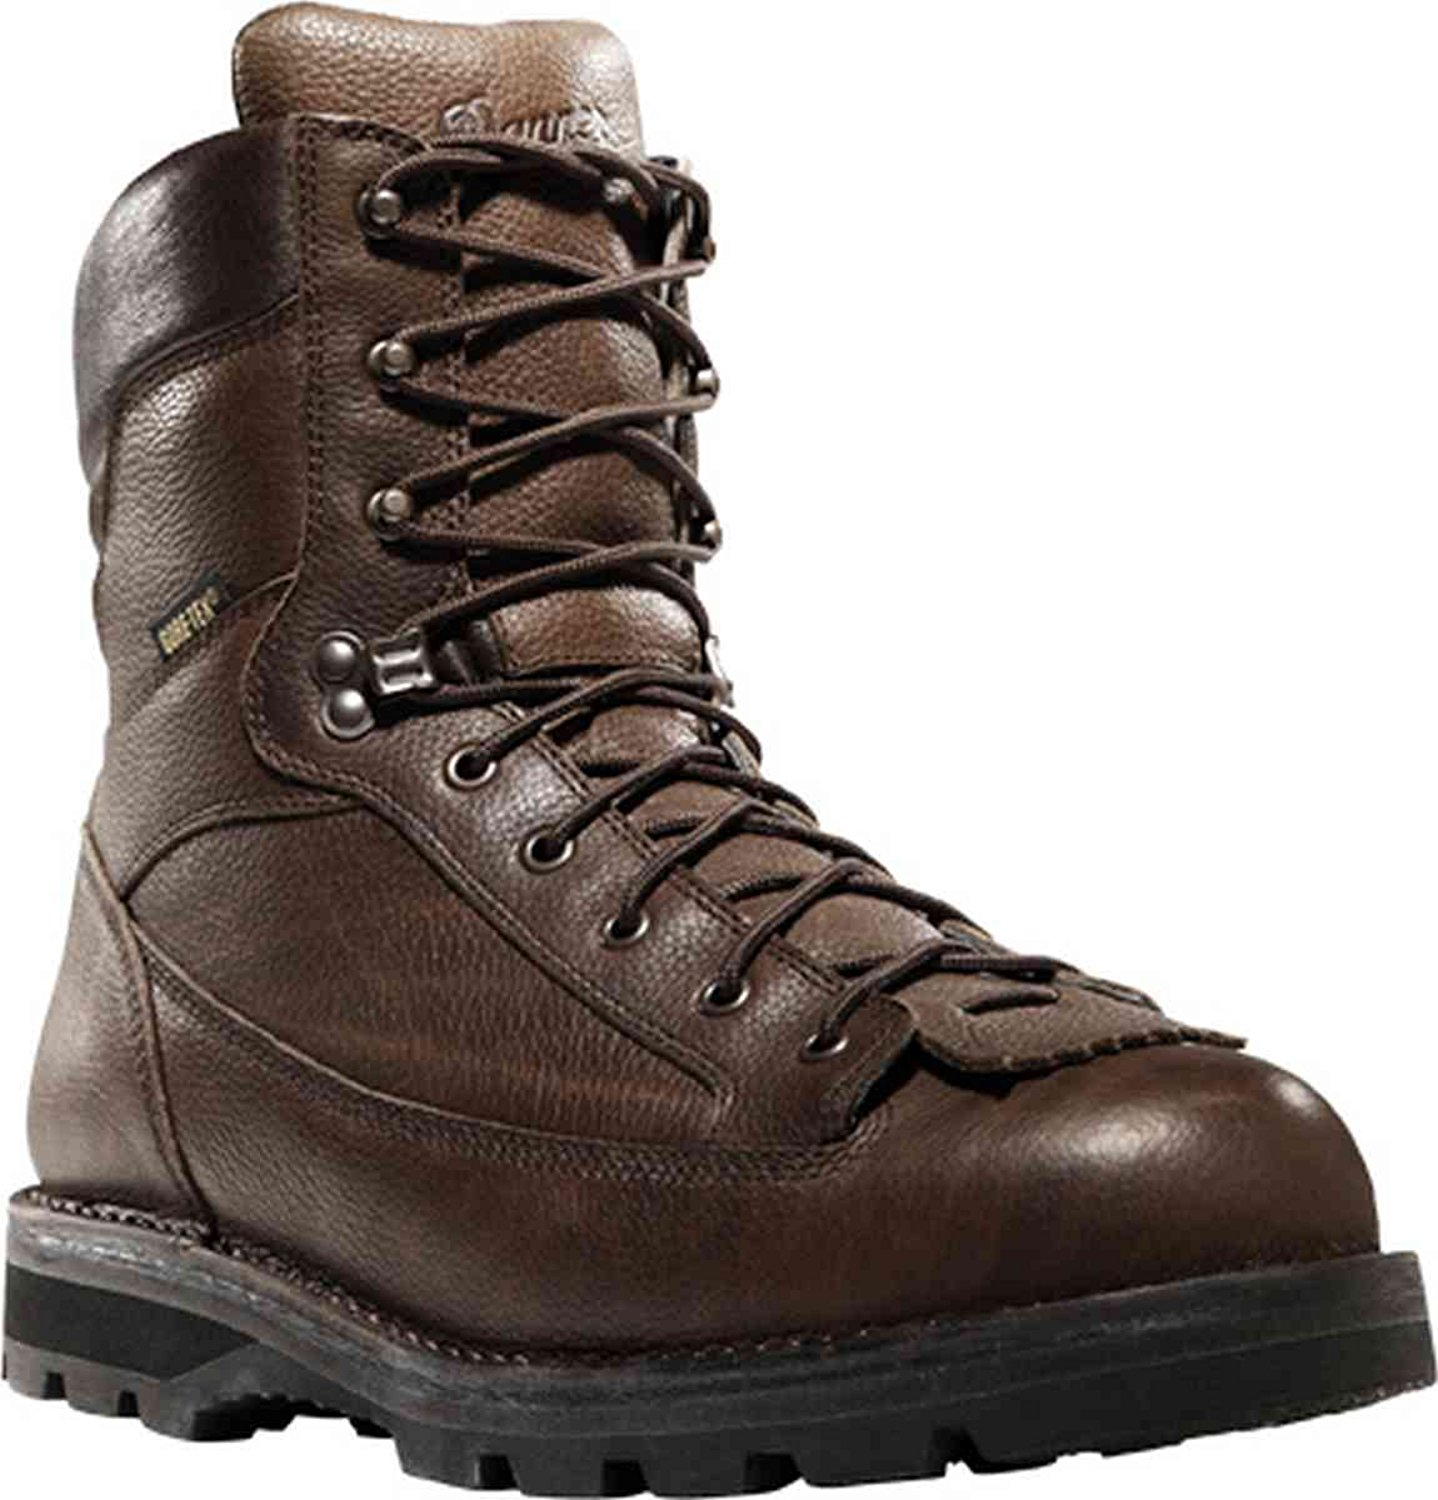 c6f22b38d9f Cheap Danner Military Boots, find Danner Military Boots deals on ...